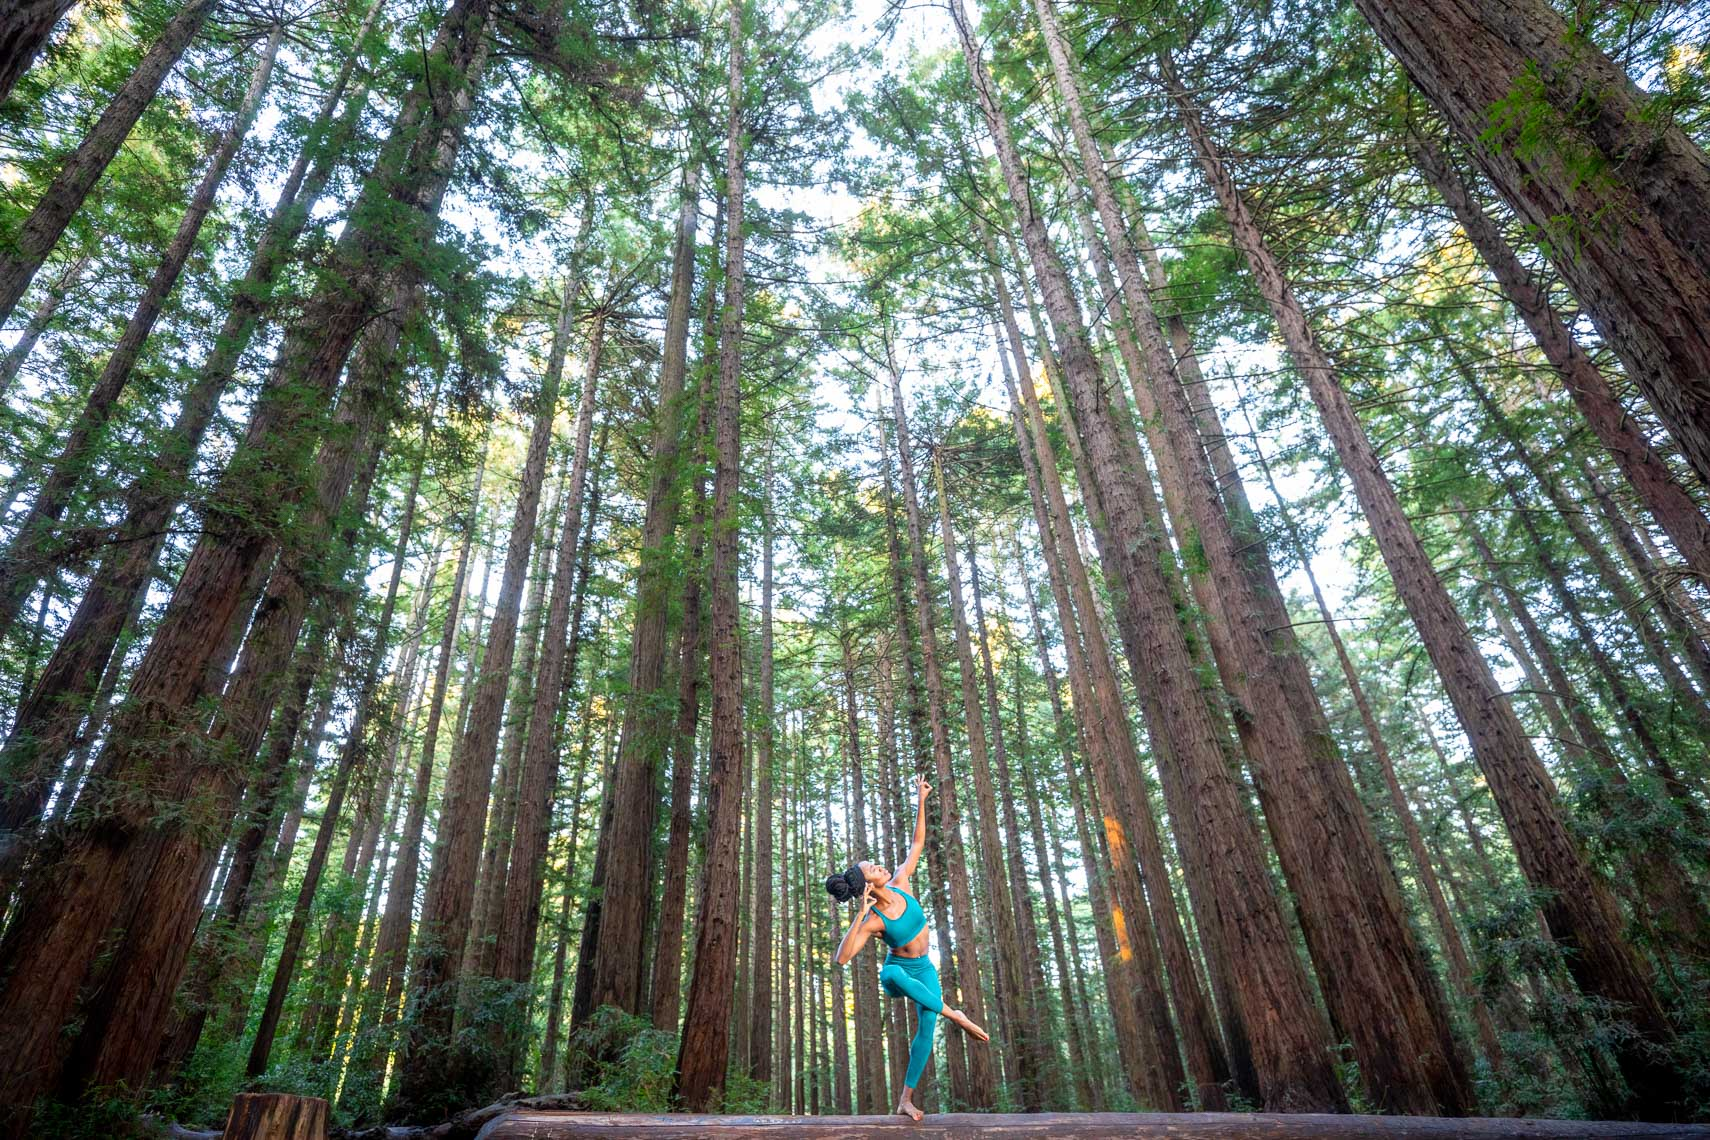 African american woman athlete running in the redwoods by advertising photographer robert houser based in San Francisco